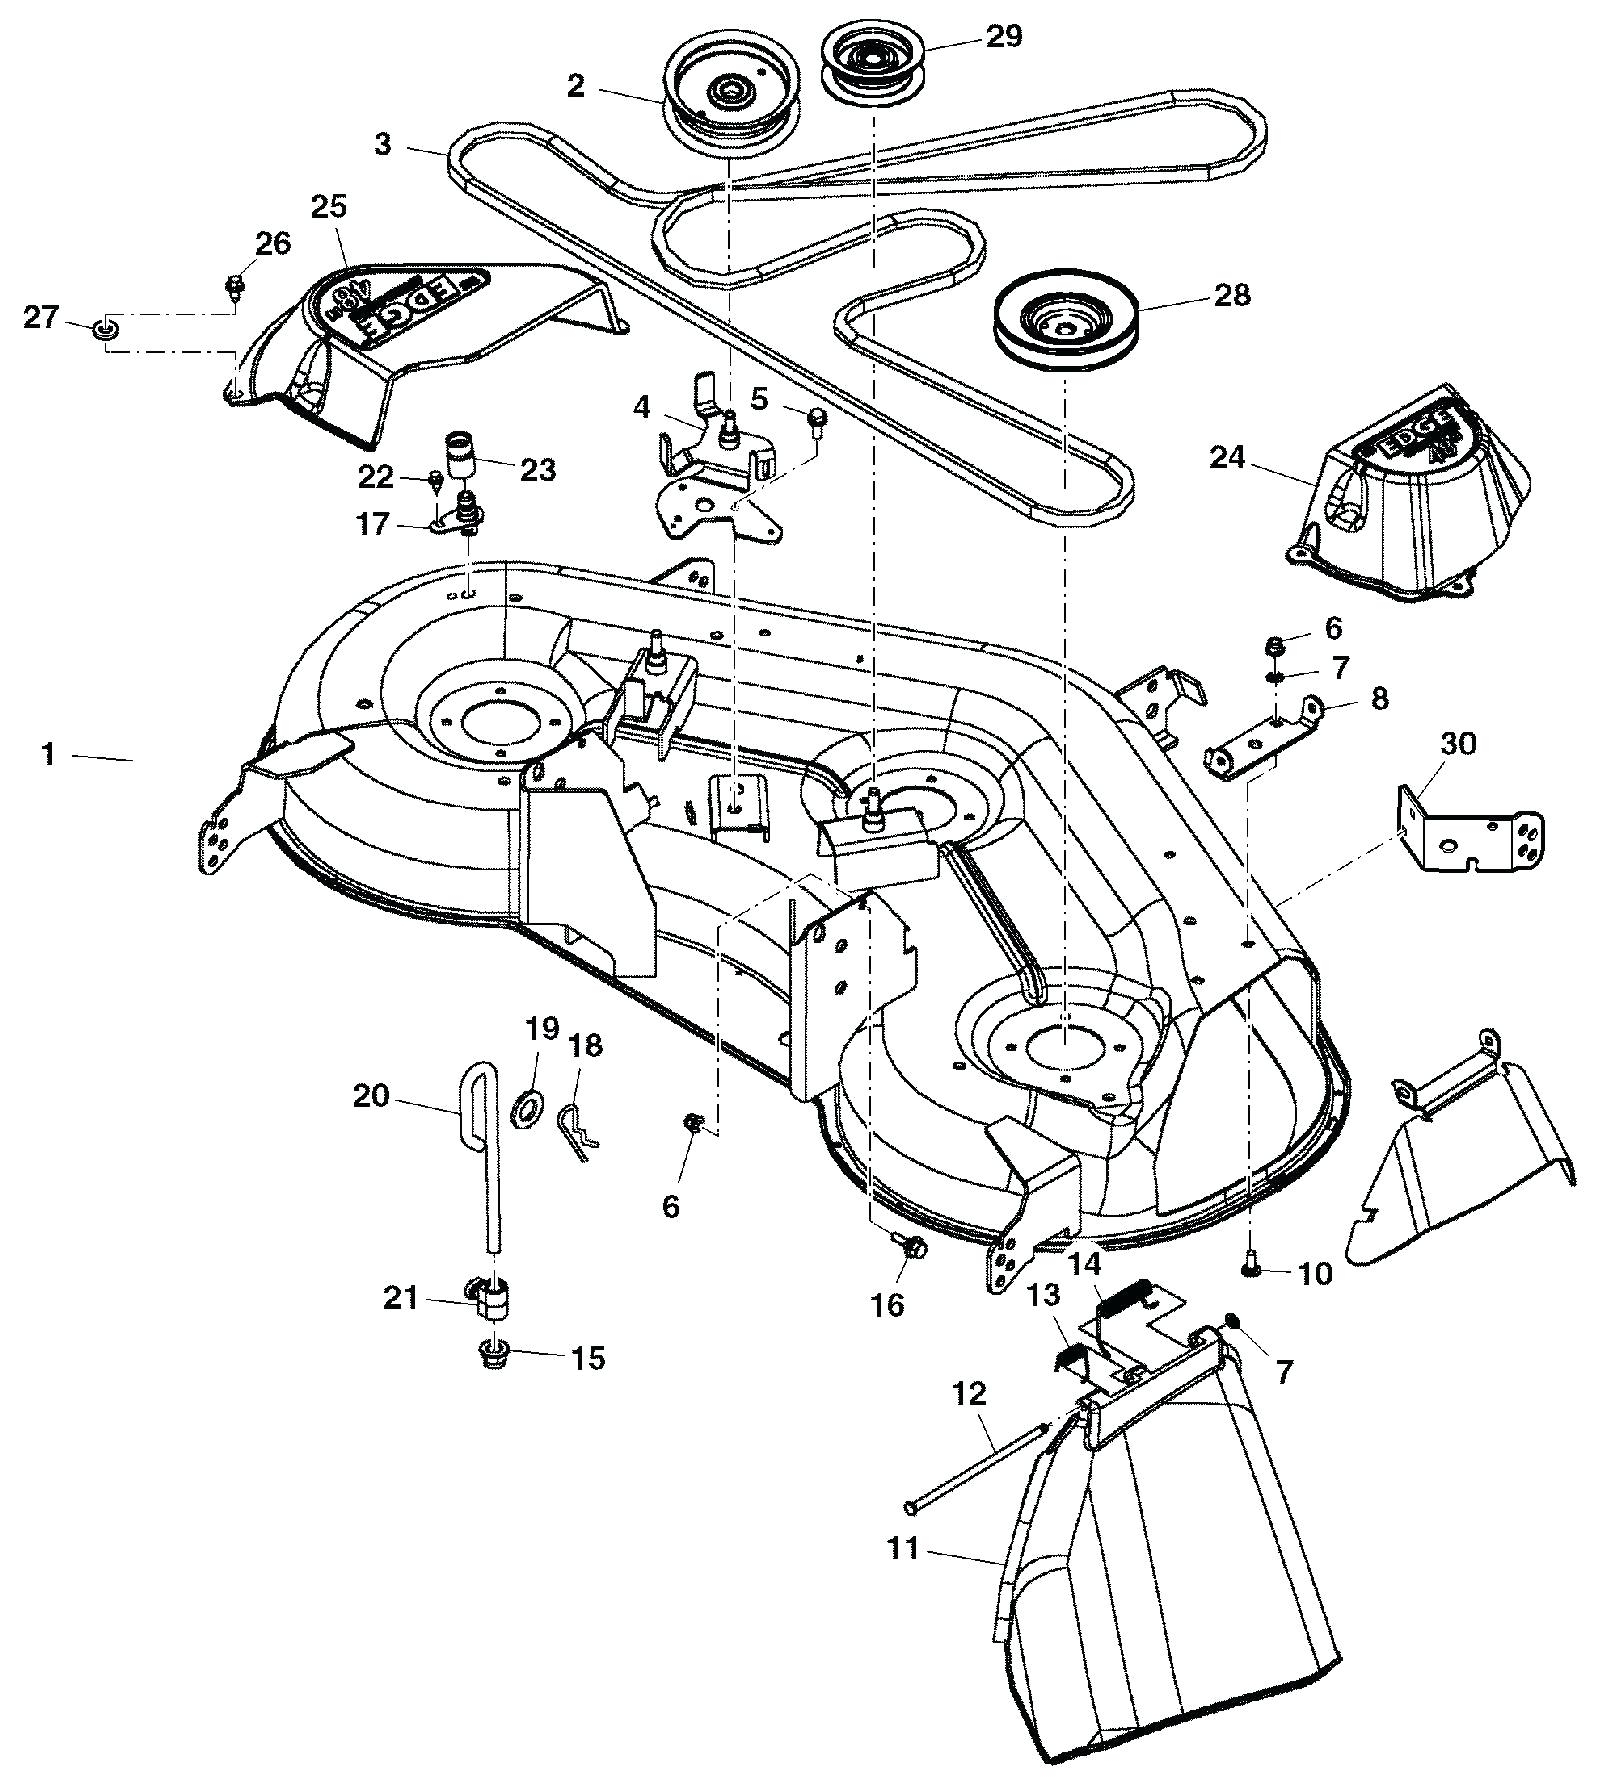 John Deere Lawn Tractor Parts Diagram